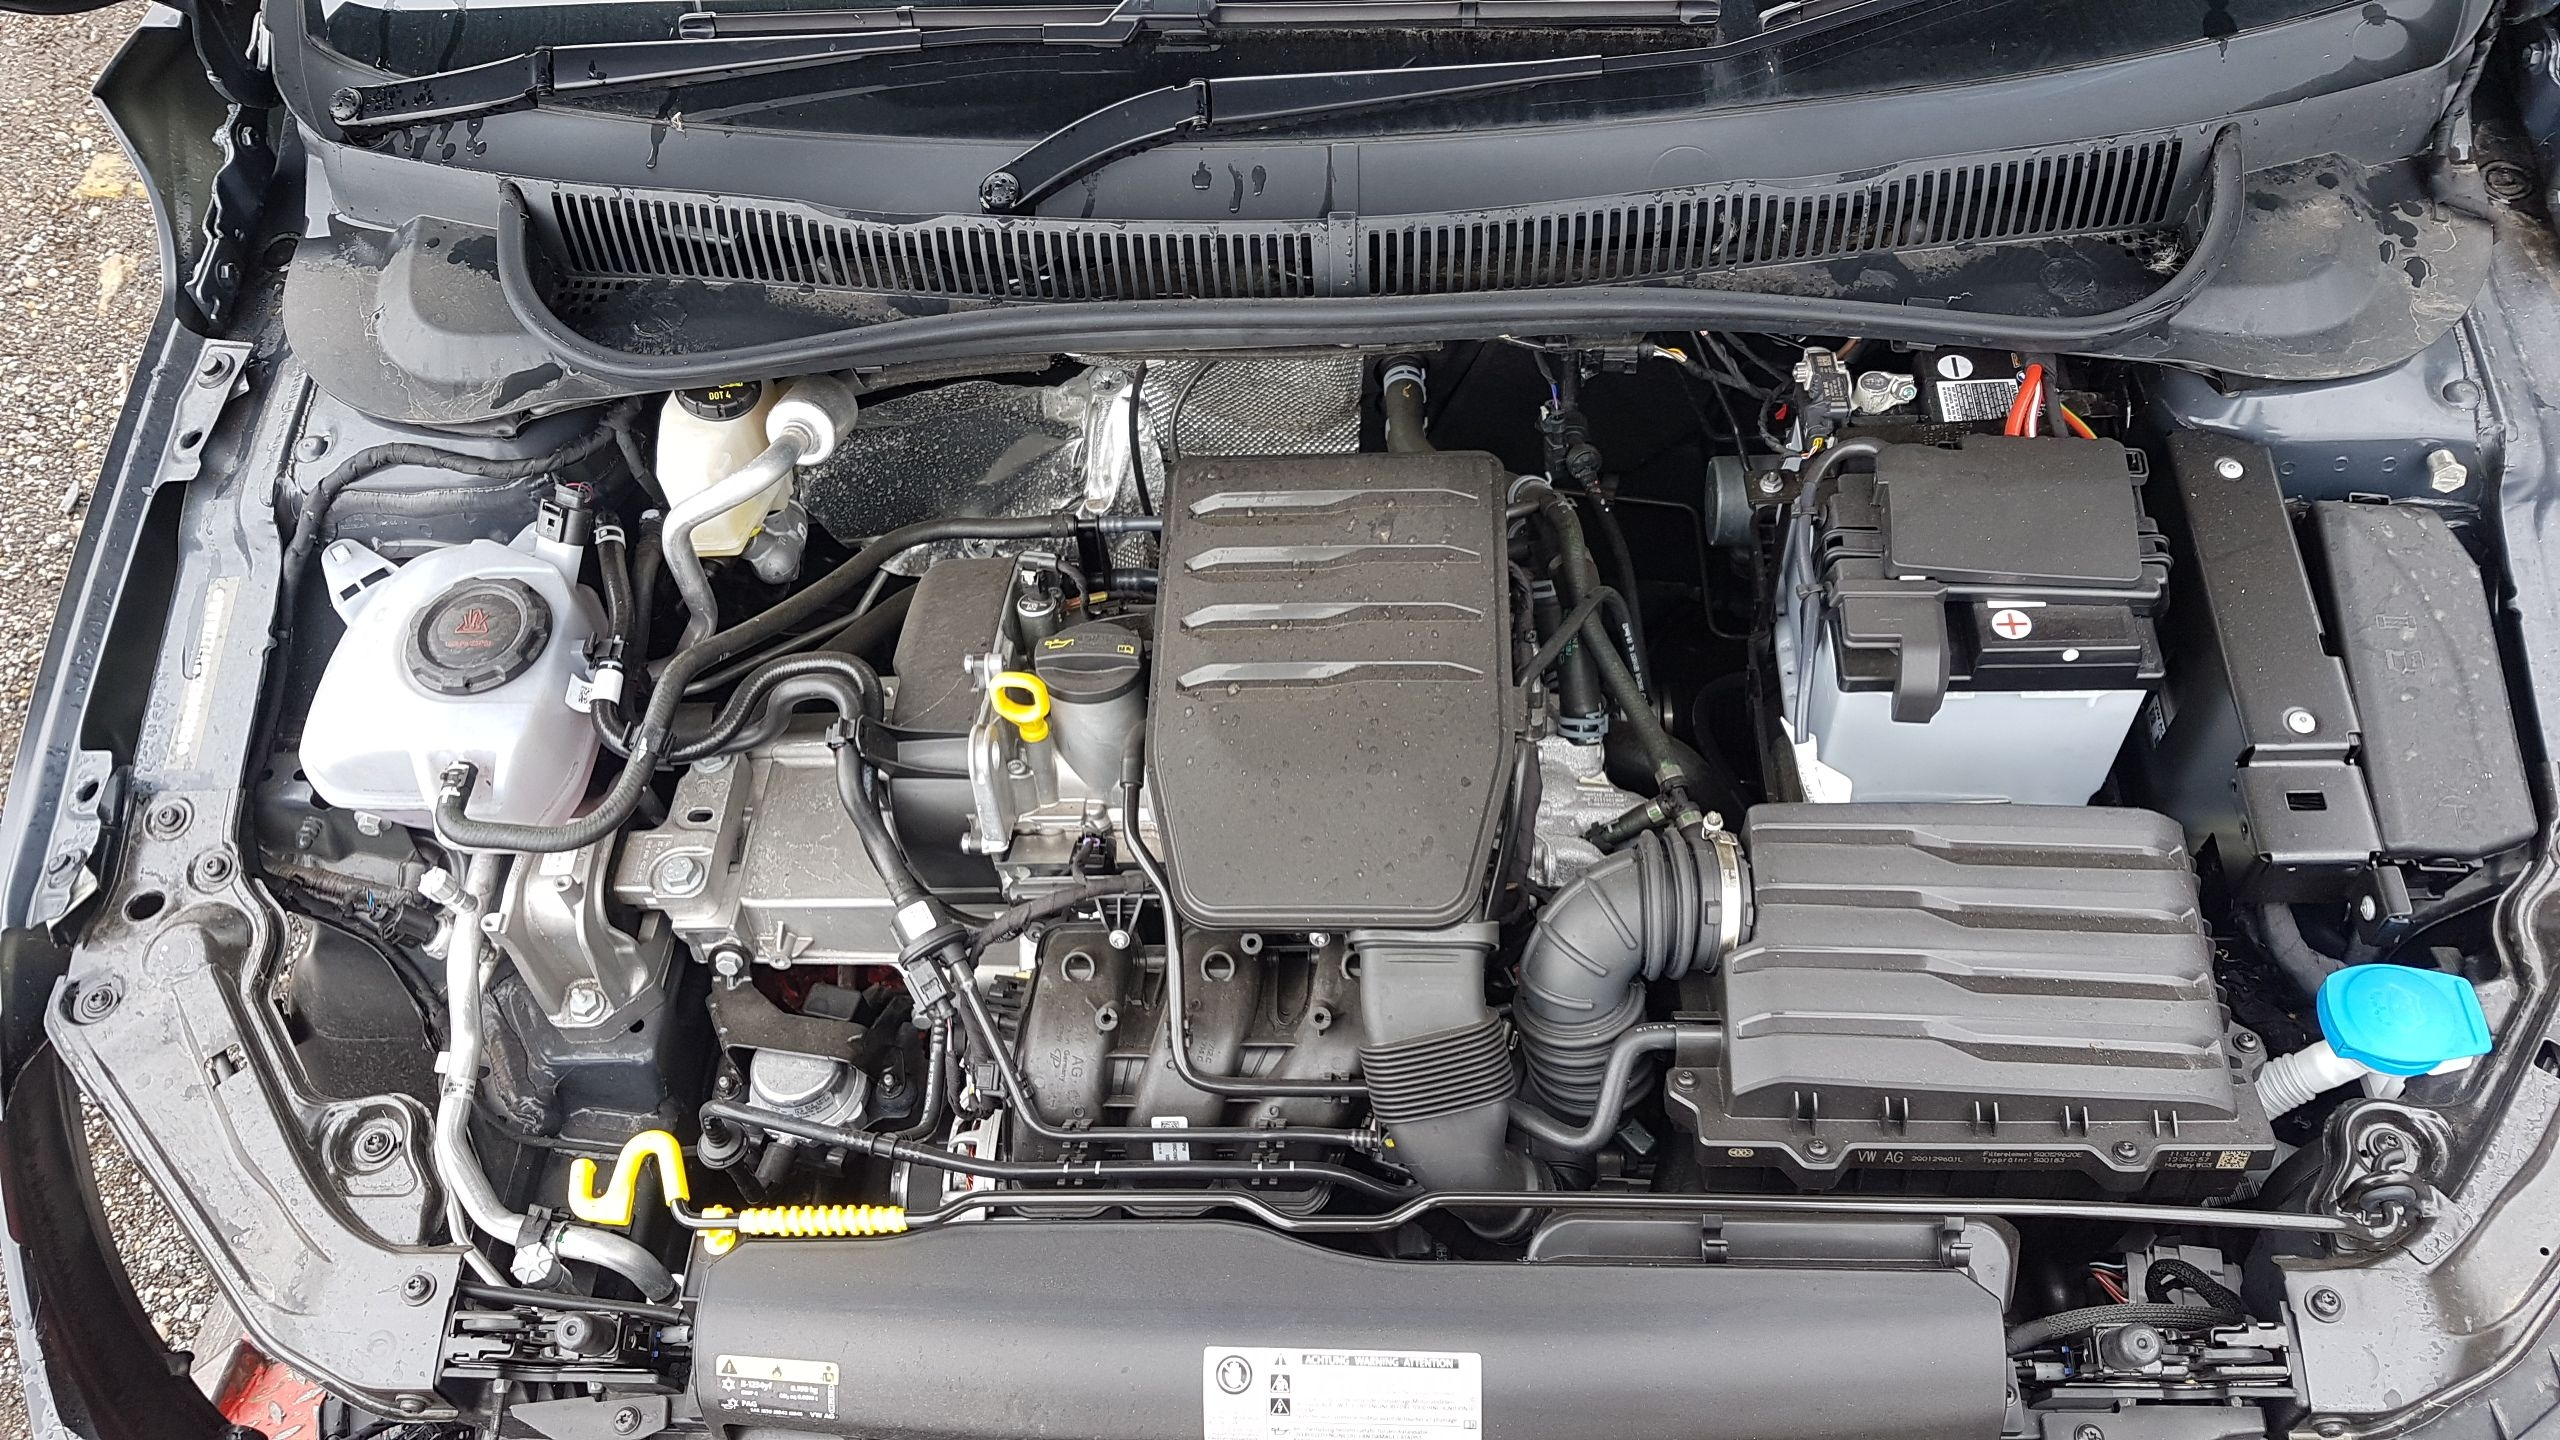 View Auto part Compressor Volkswagen Polo 2019